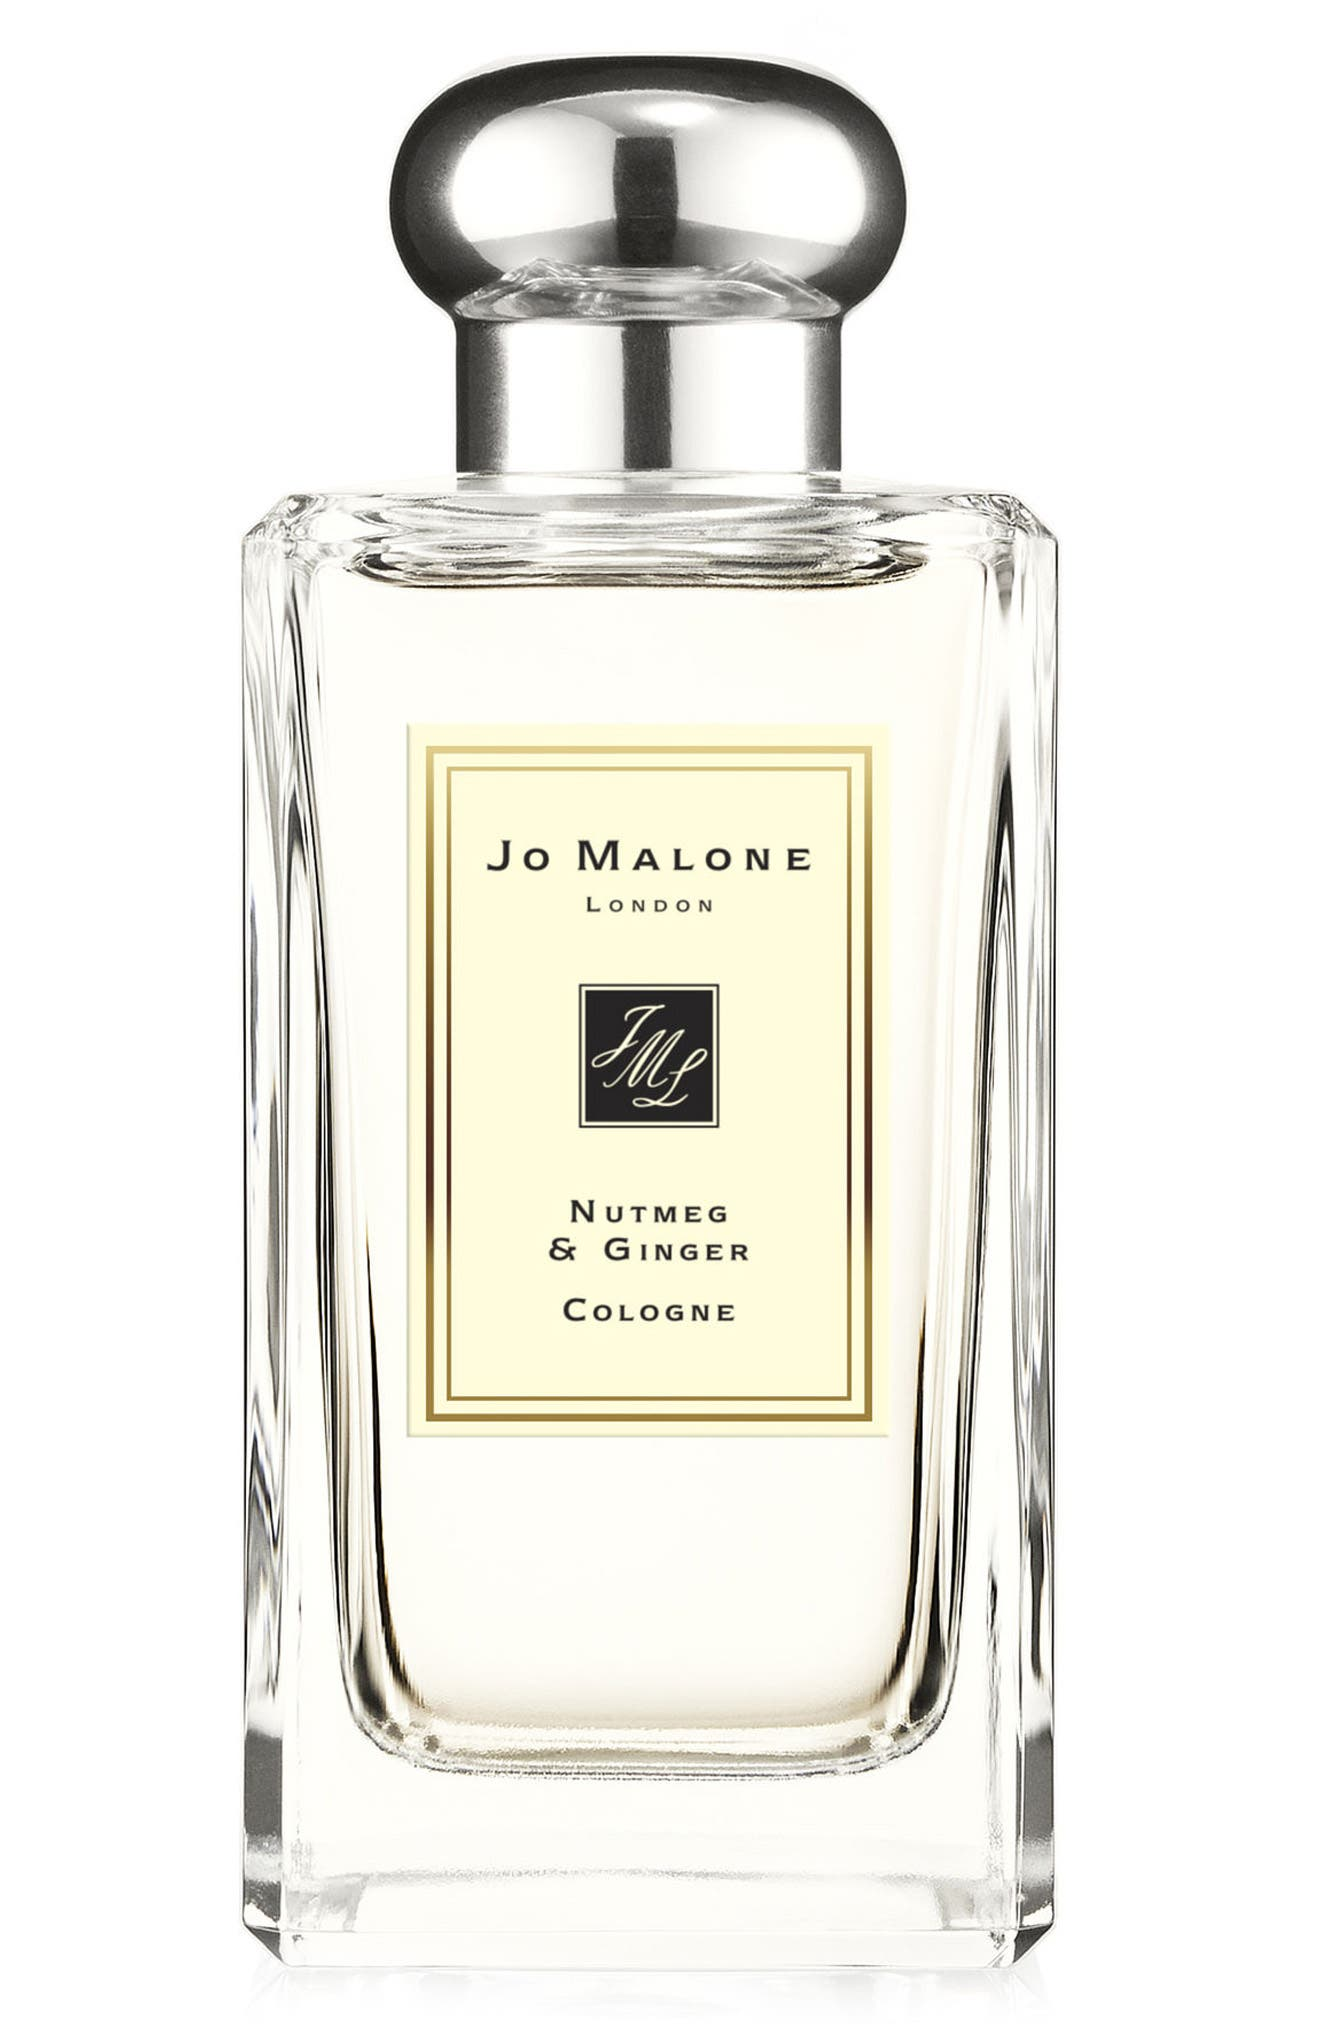 JO MALONE LONDON™ 'Nutmeg & Ginger' Cologne